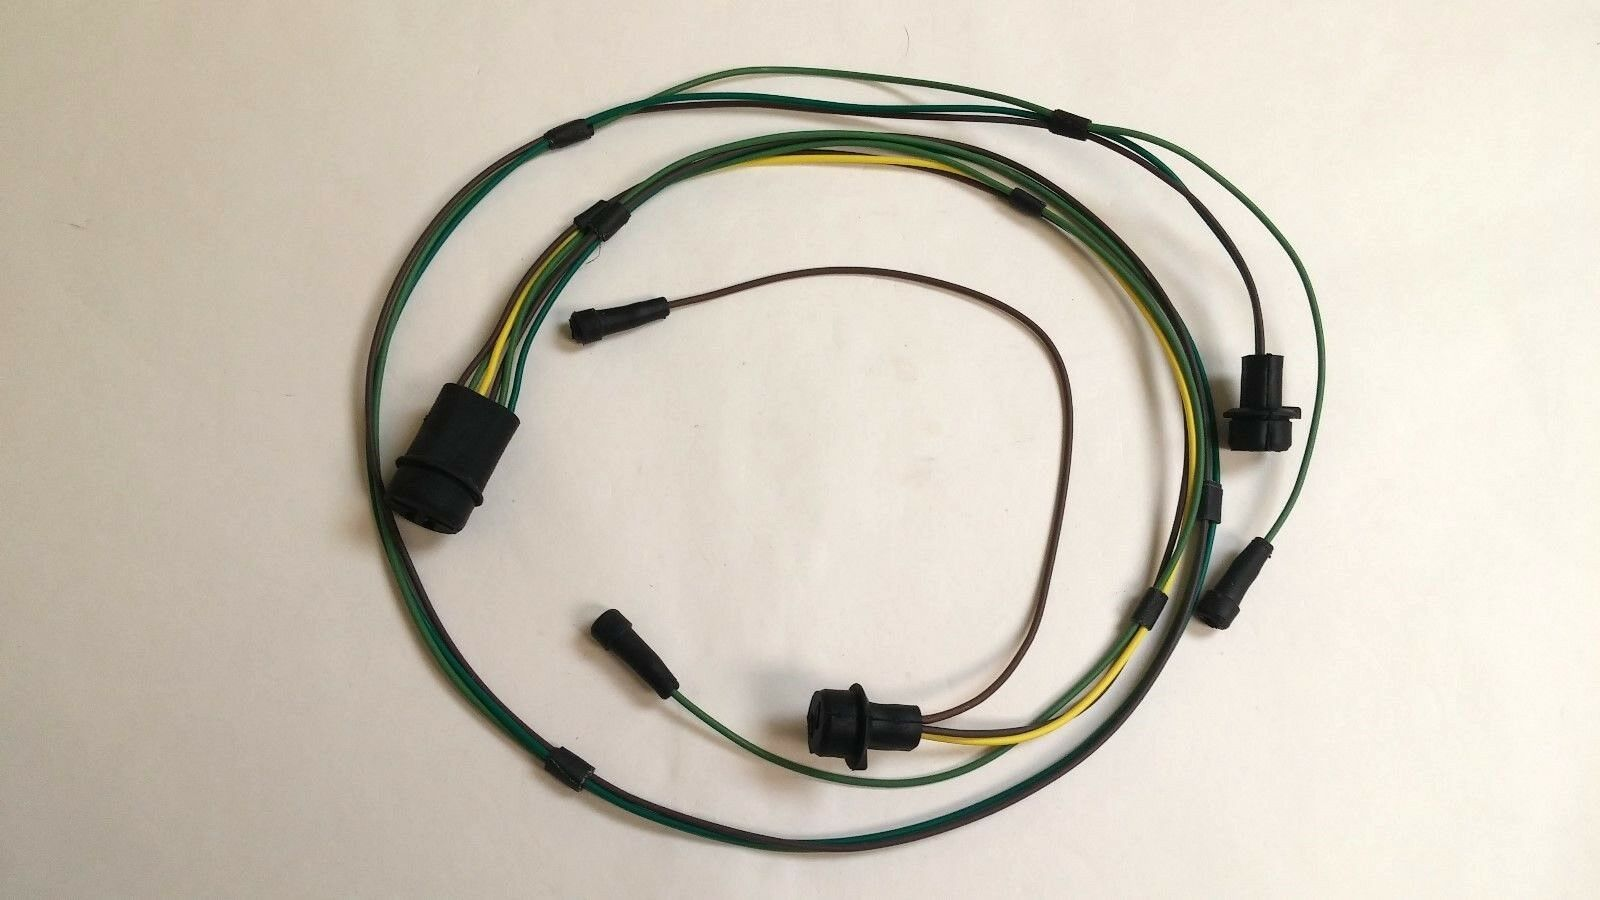 1 of 5Only 2 available 1967 Chevy Pick Up Truck Stepside Rear Body Light Wiring  Harness Frame ...